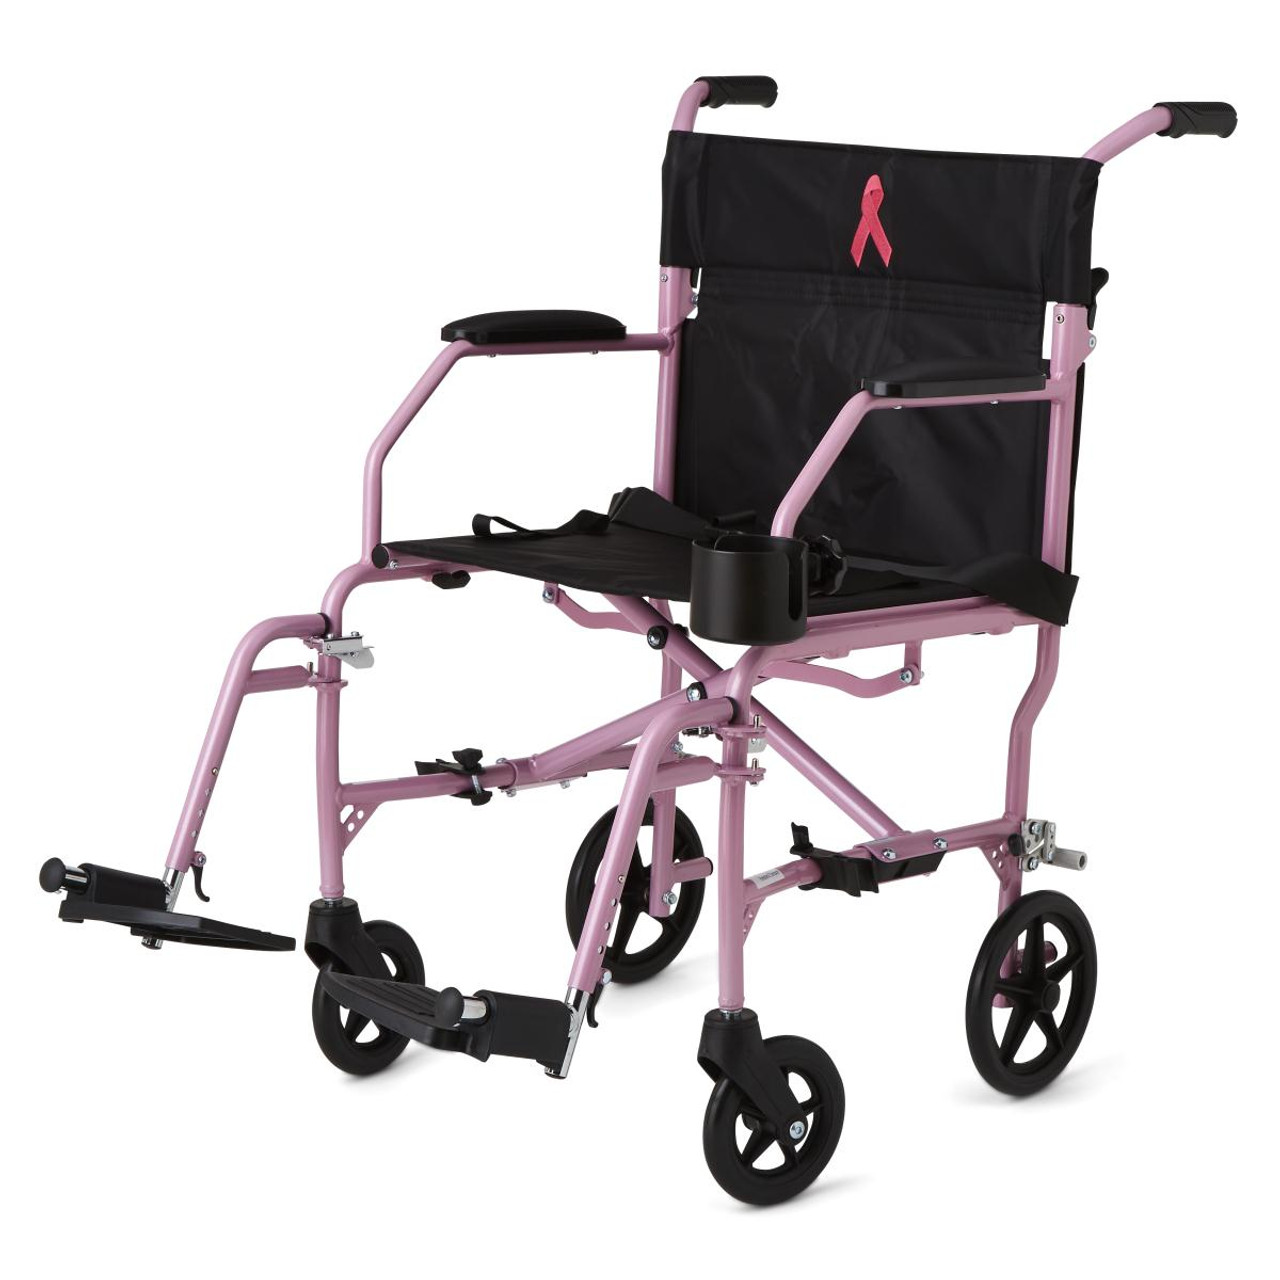 Medline Ultralight Transport Wheelchair Pink